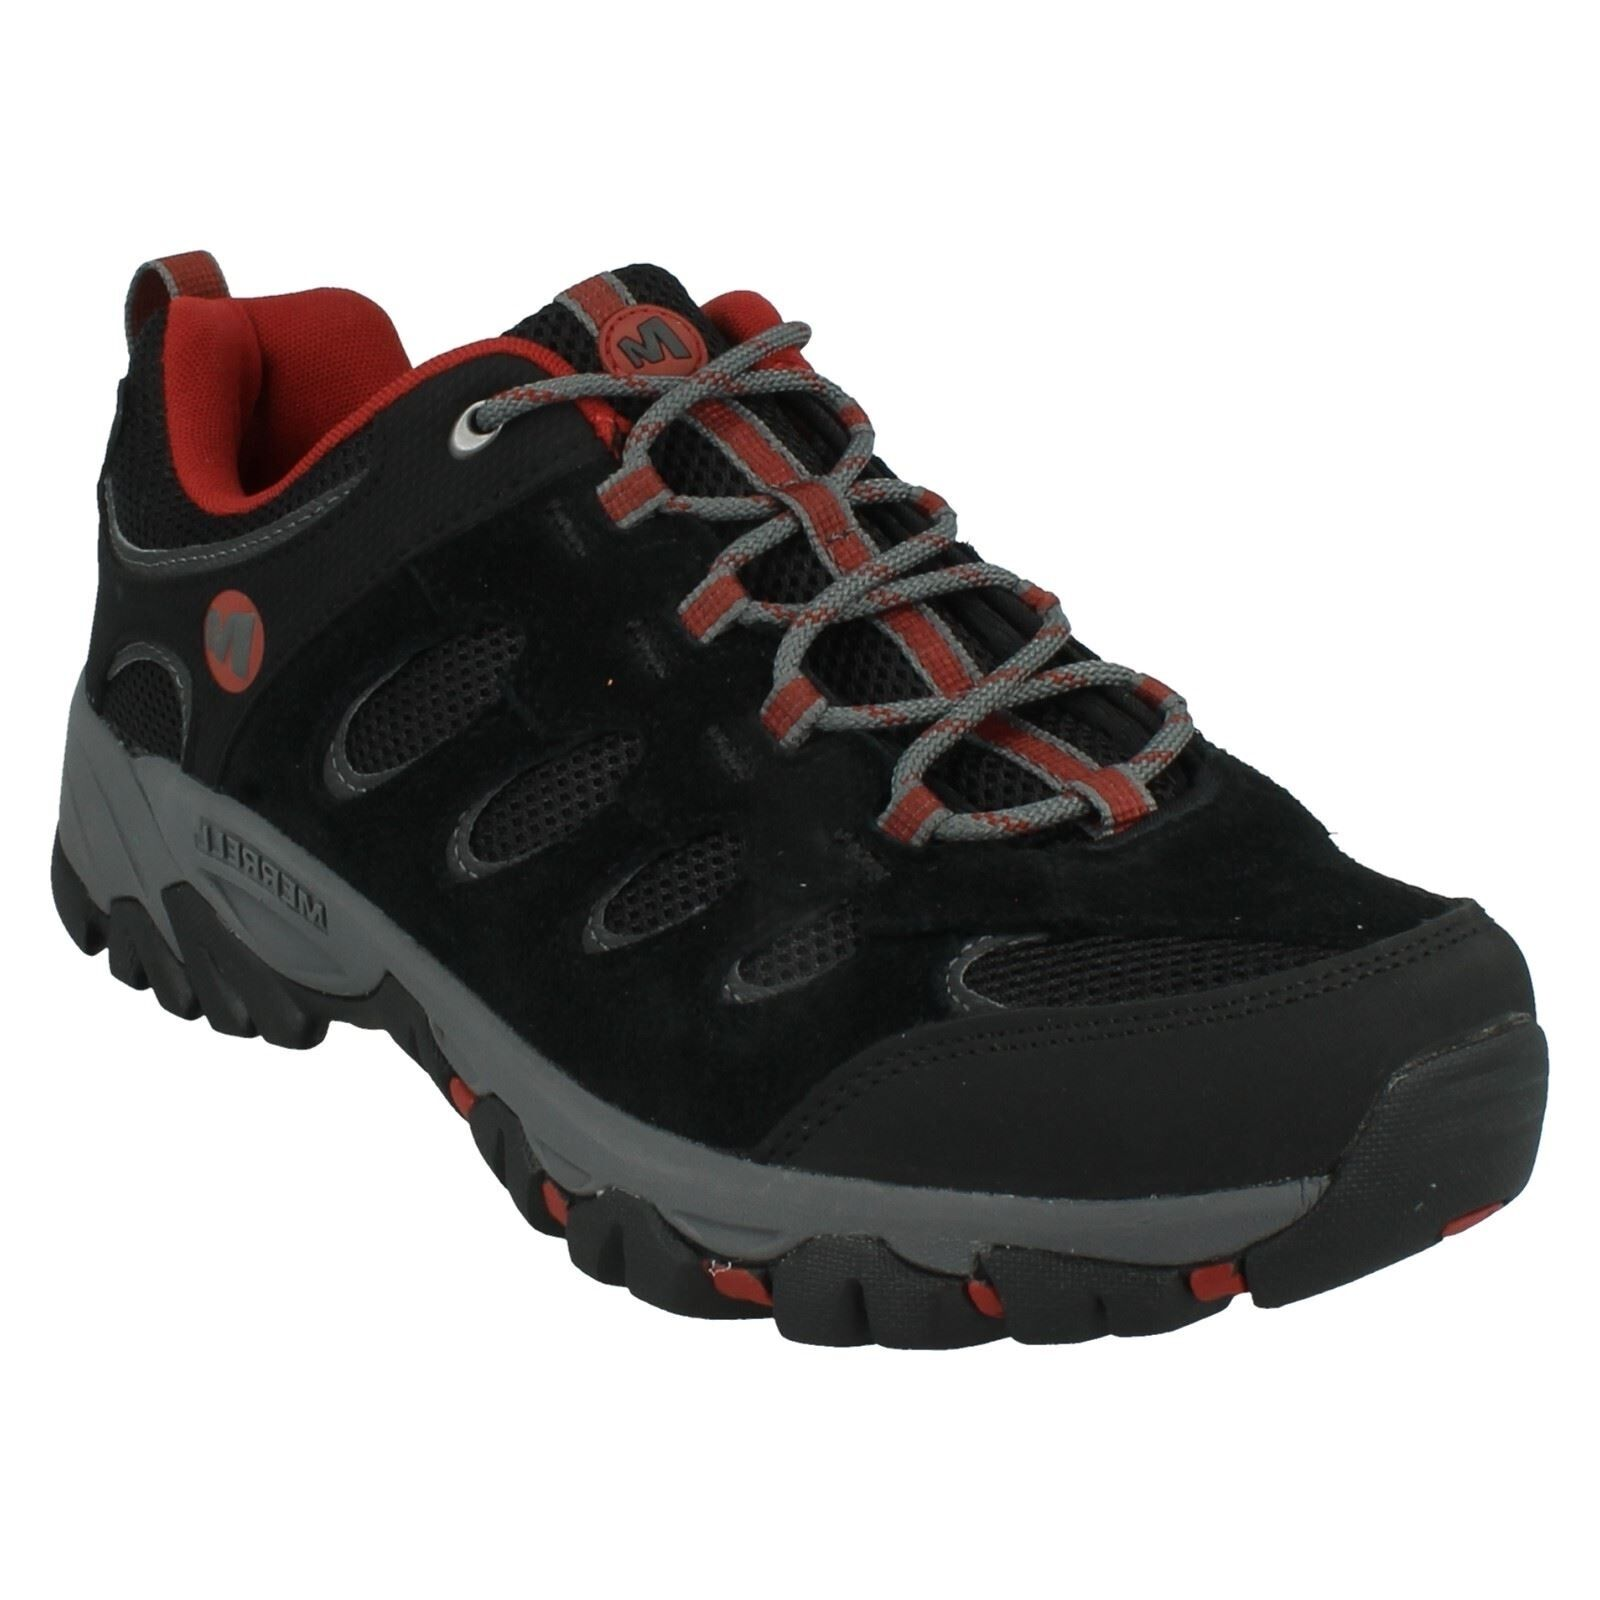 Hombre MERRELL LACE UP SUEDE Negro/RED WALKING WALKING WALKING HIKING TRAINERS Zapatos RIDGEPASS 0307ea